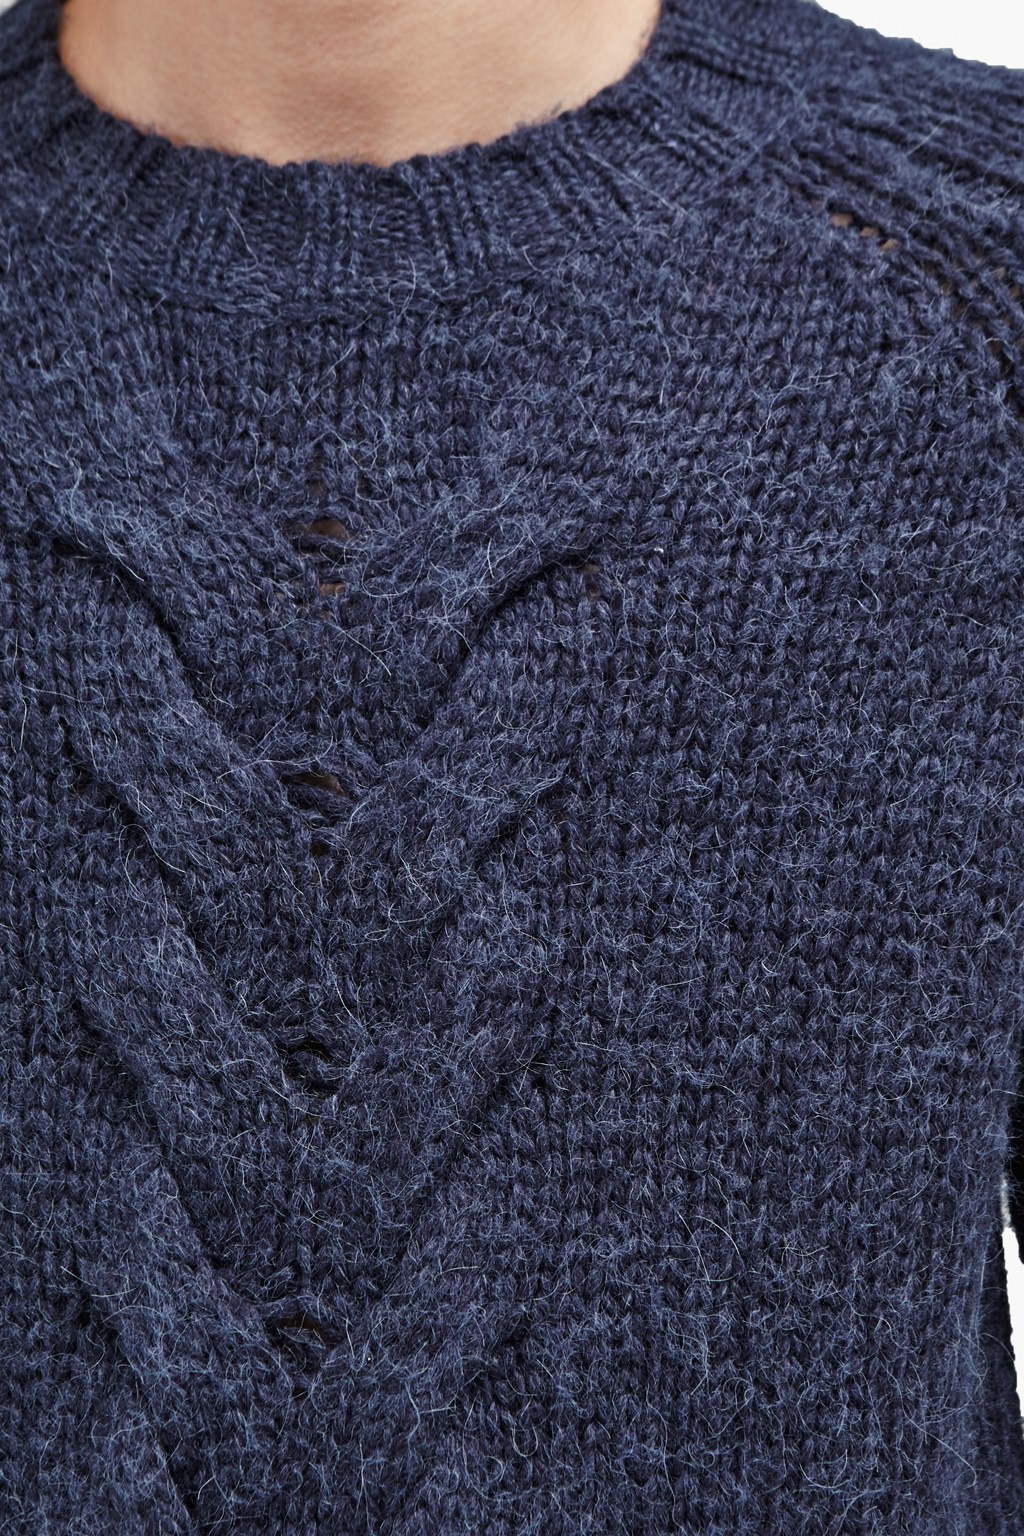 da729d8933 Ridge Cable Knit Jumper